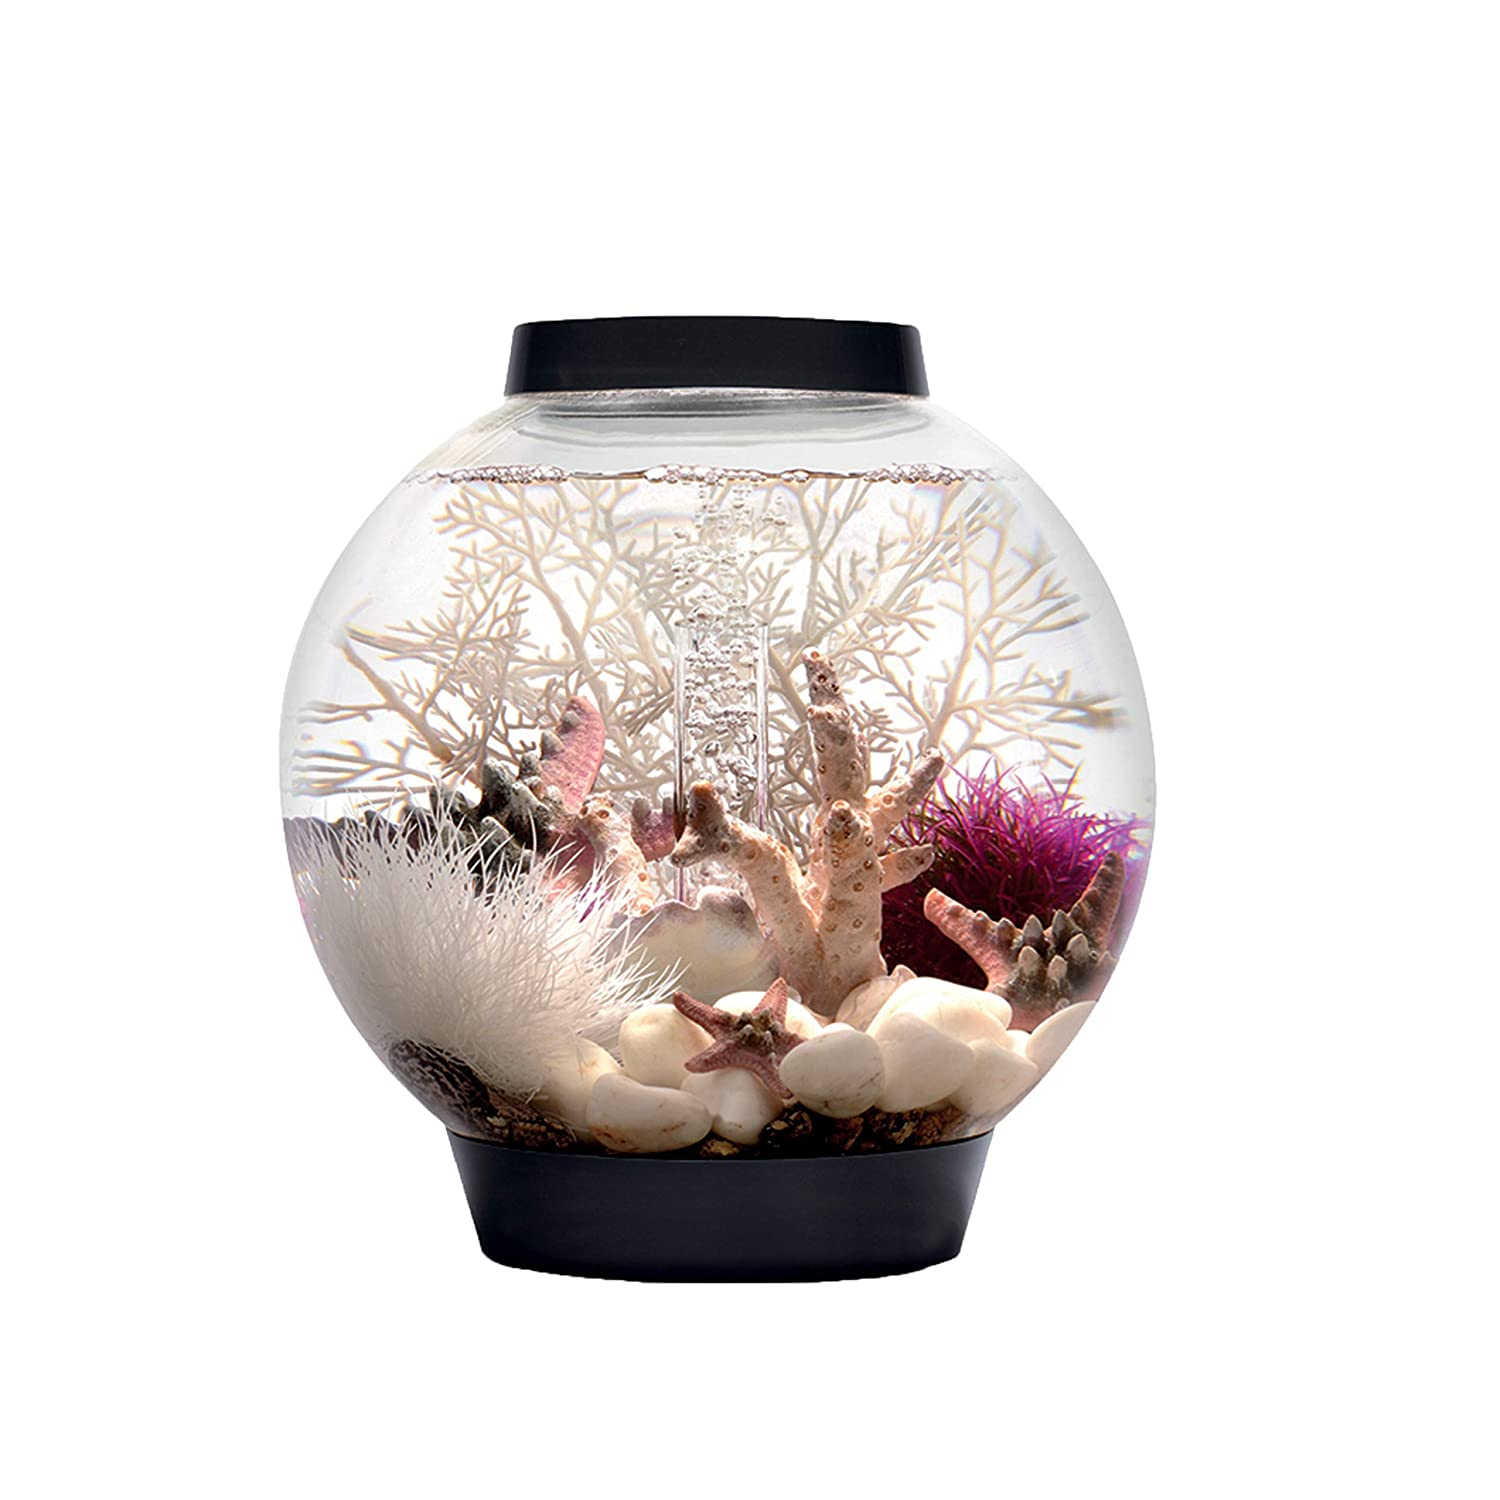 Black 4 Gallons Black 4 Gallons Reef One Baby biOrb Aquarium with Led Light, Black, 4 Gallons